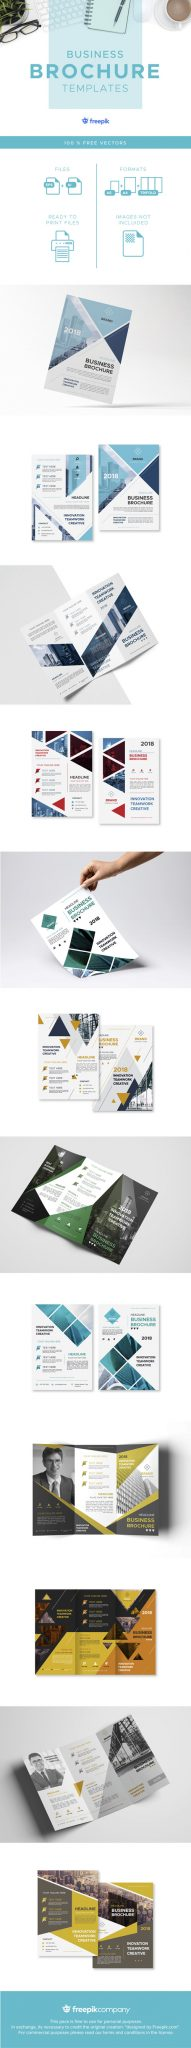 Business_Brochures_&_Trifolds